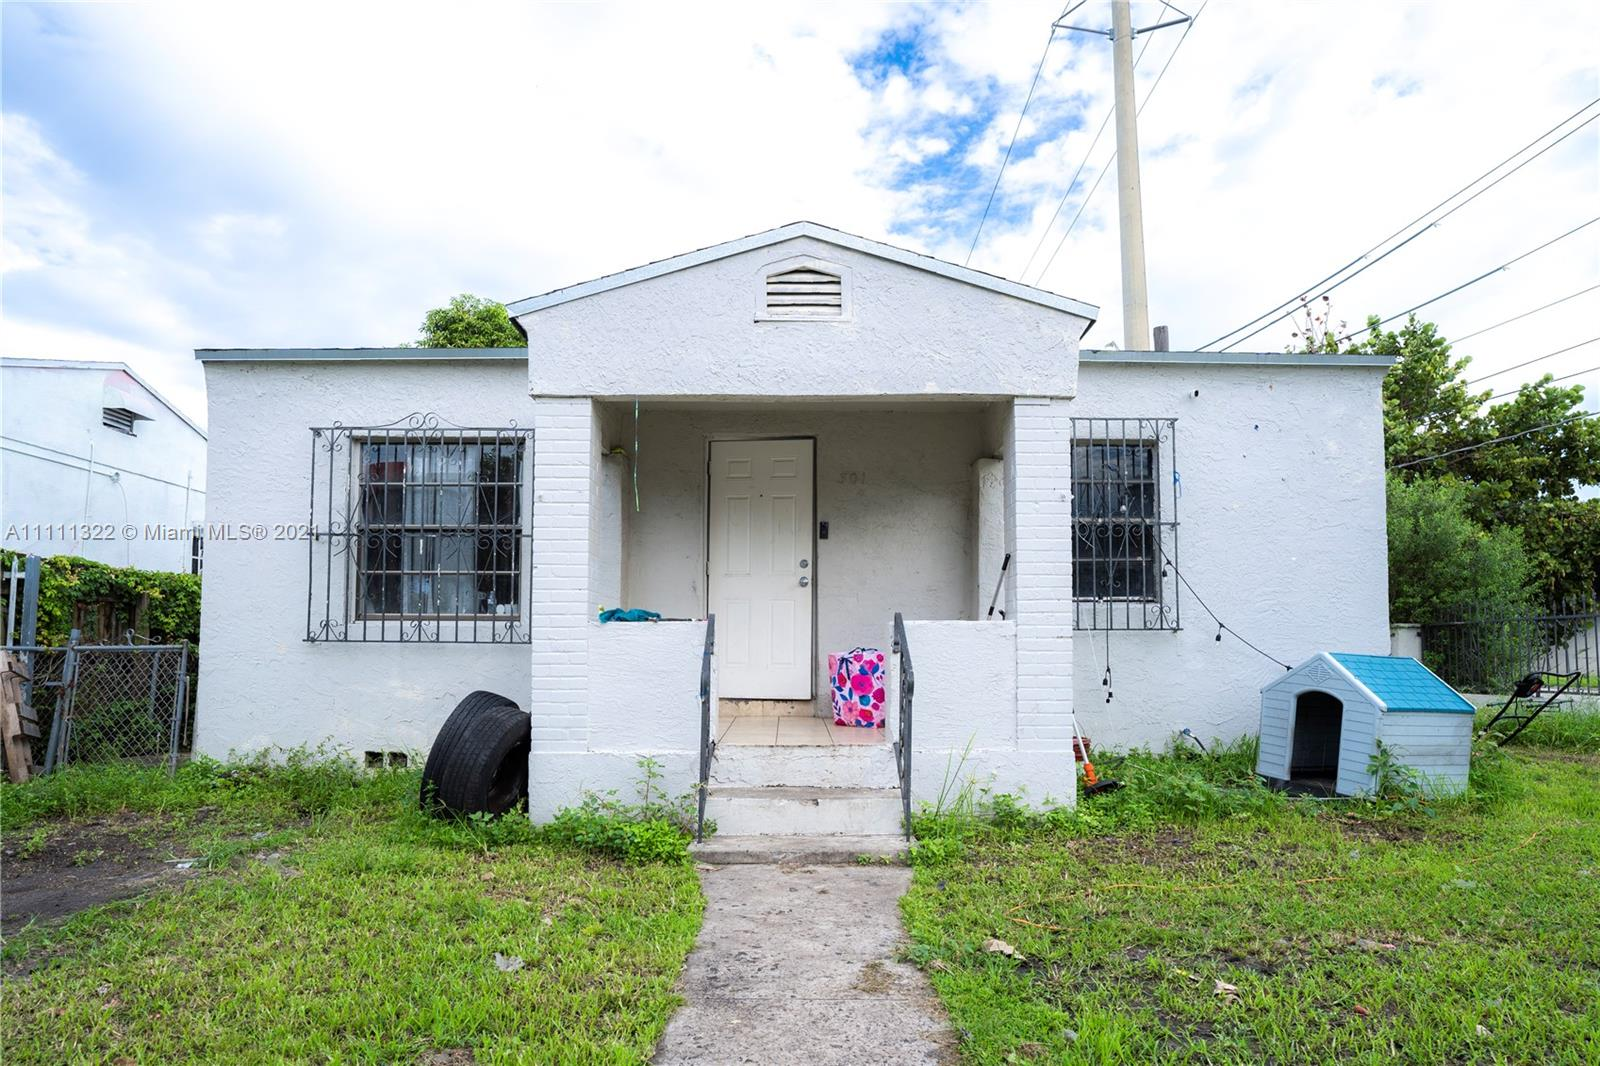 301 NW 37th St, Miami, Florida 33127, ,Residential Income,For Sale,37th St,A11111322